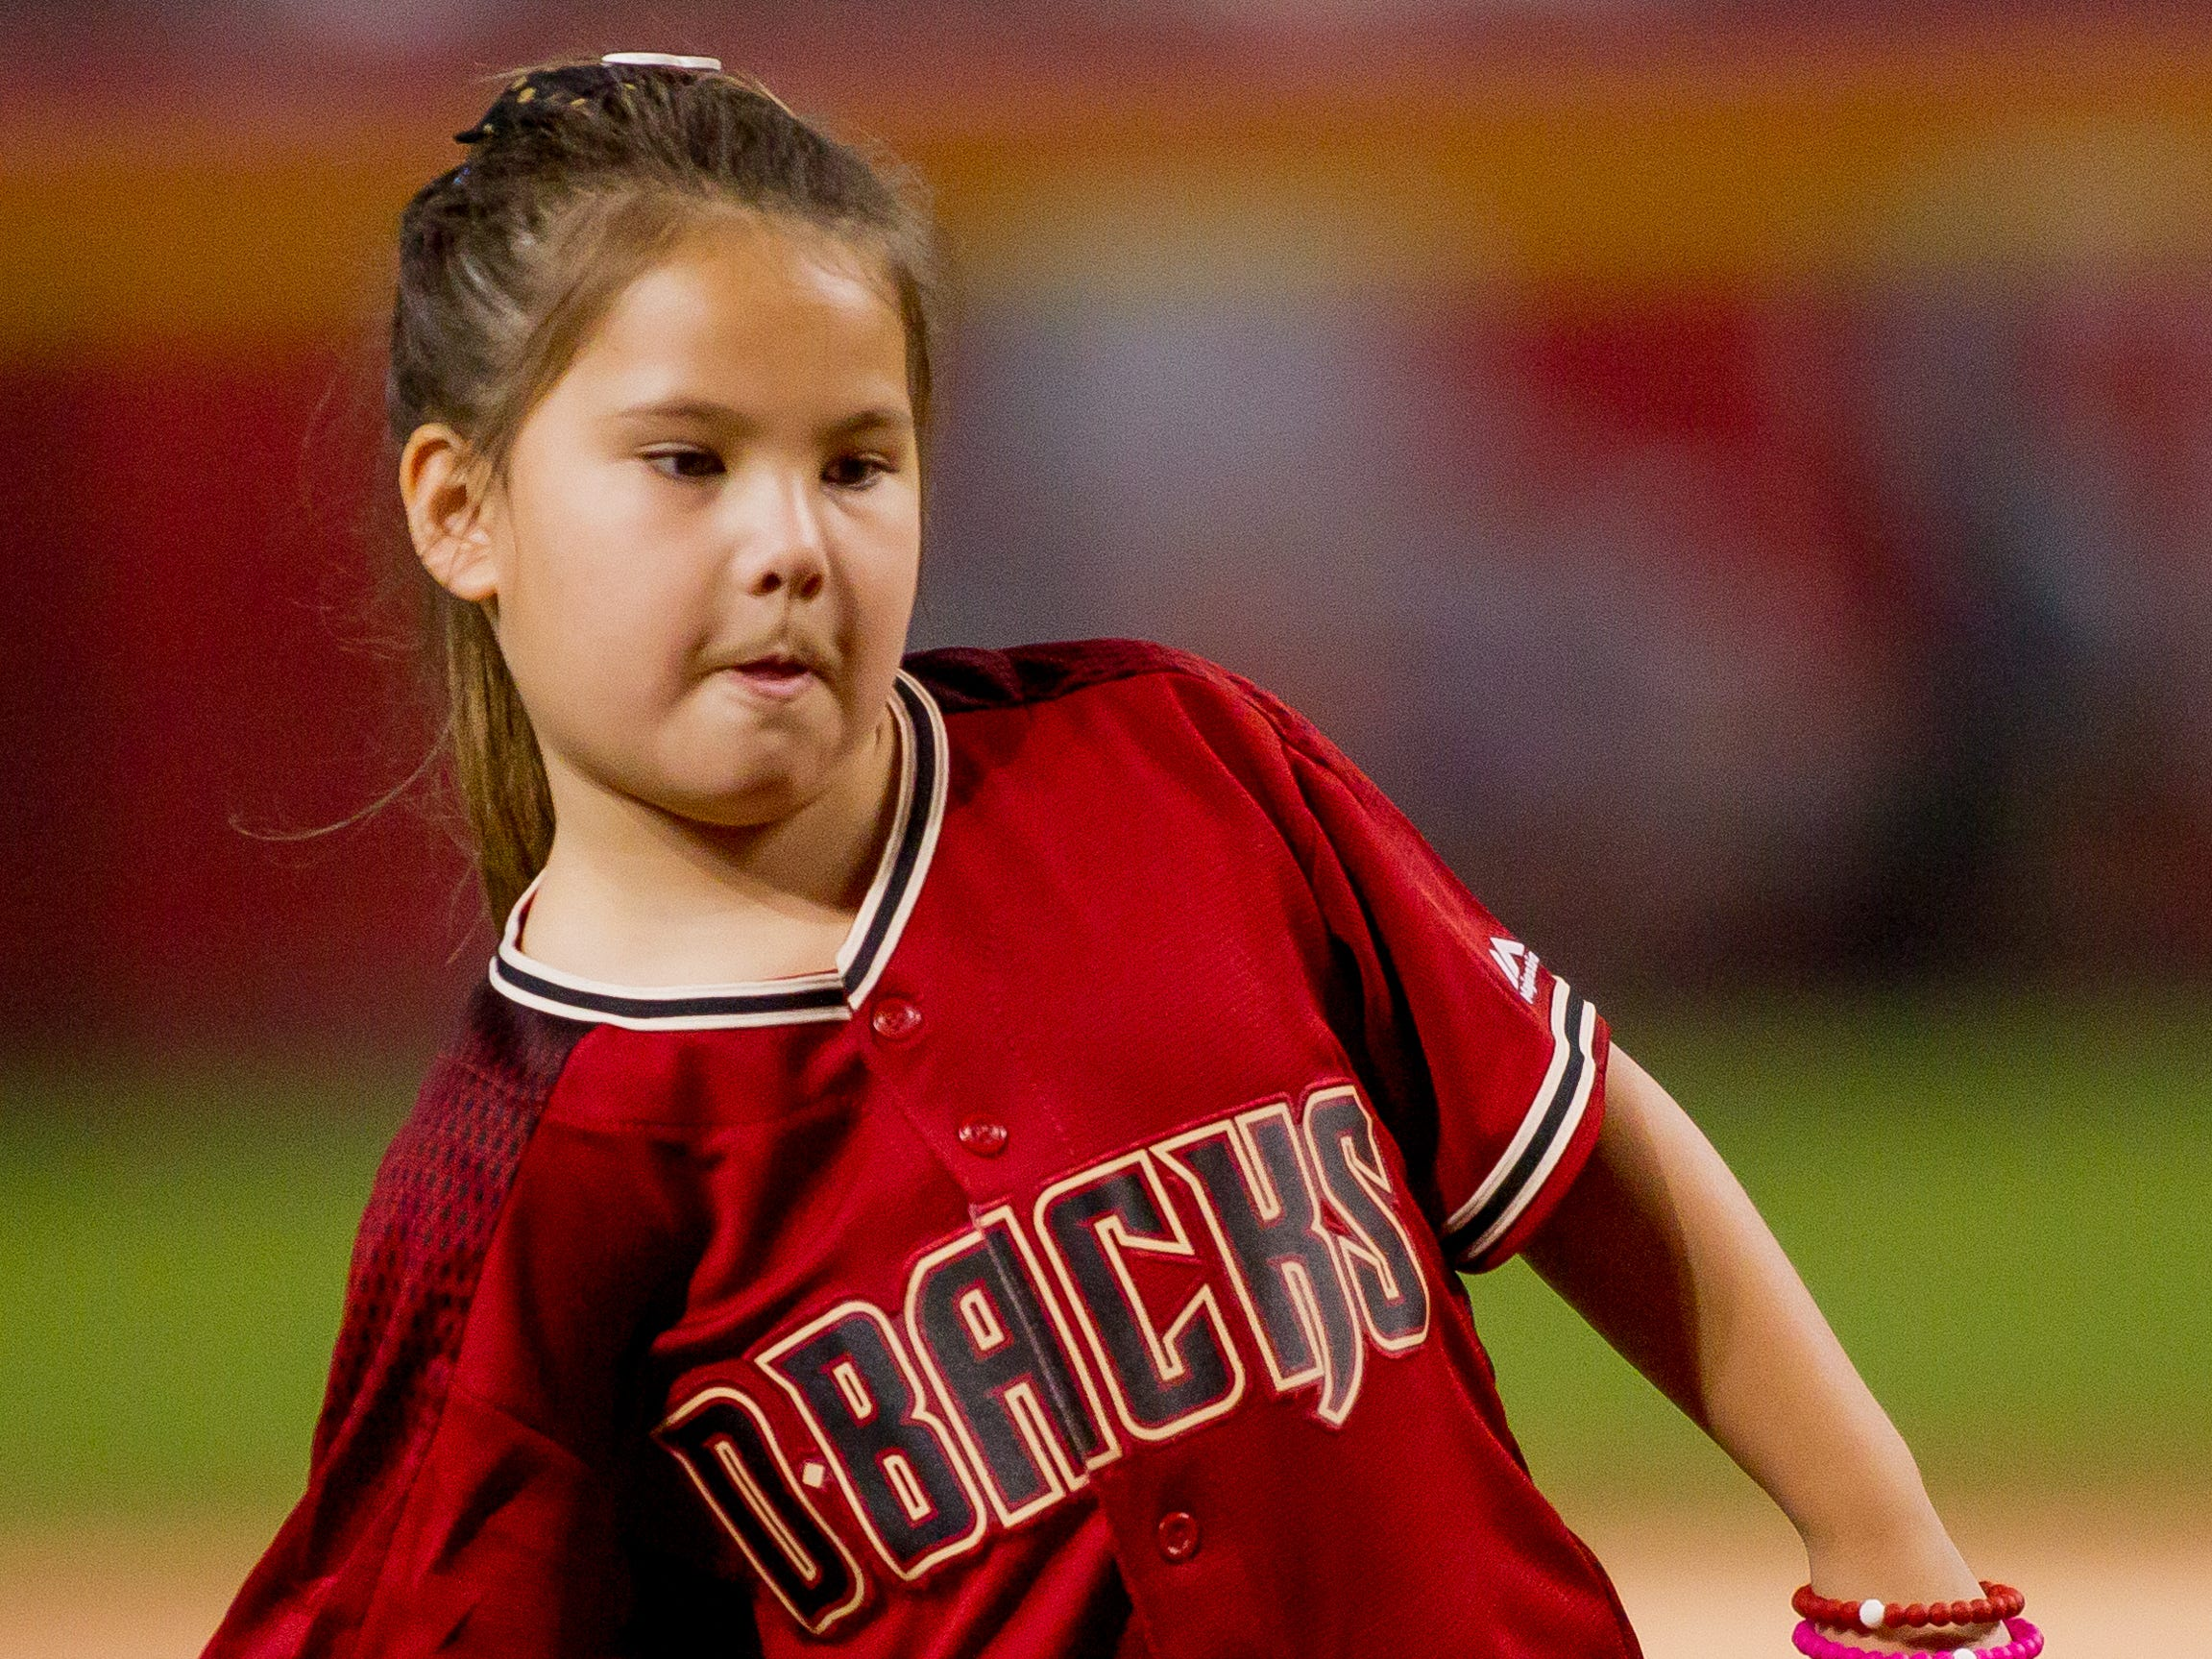 Hailey Dawson, 8, of Henderson, Nevada, throws the ceremonial first pitch on July 21, 2018, before the Arizona Diamondbacks' matchup against the Colorado Rockies at Chase Field in Phoenix, Arizona. Hailey, born with Poland Syndrome, received a 3D-printed prosthetic hand created by engineering students from the University of Nevada Las Vegas.